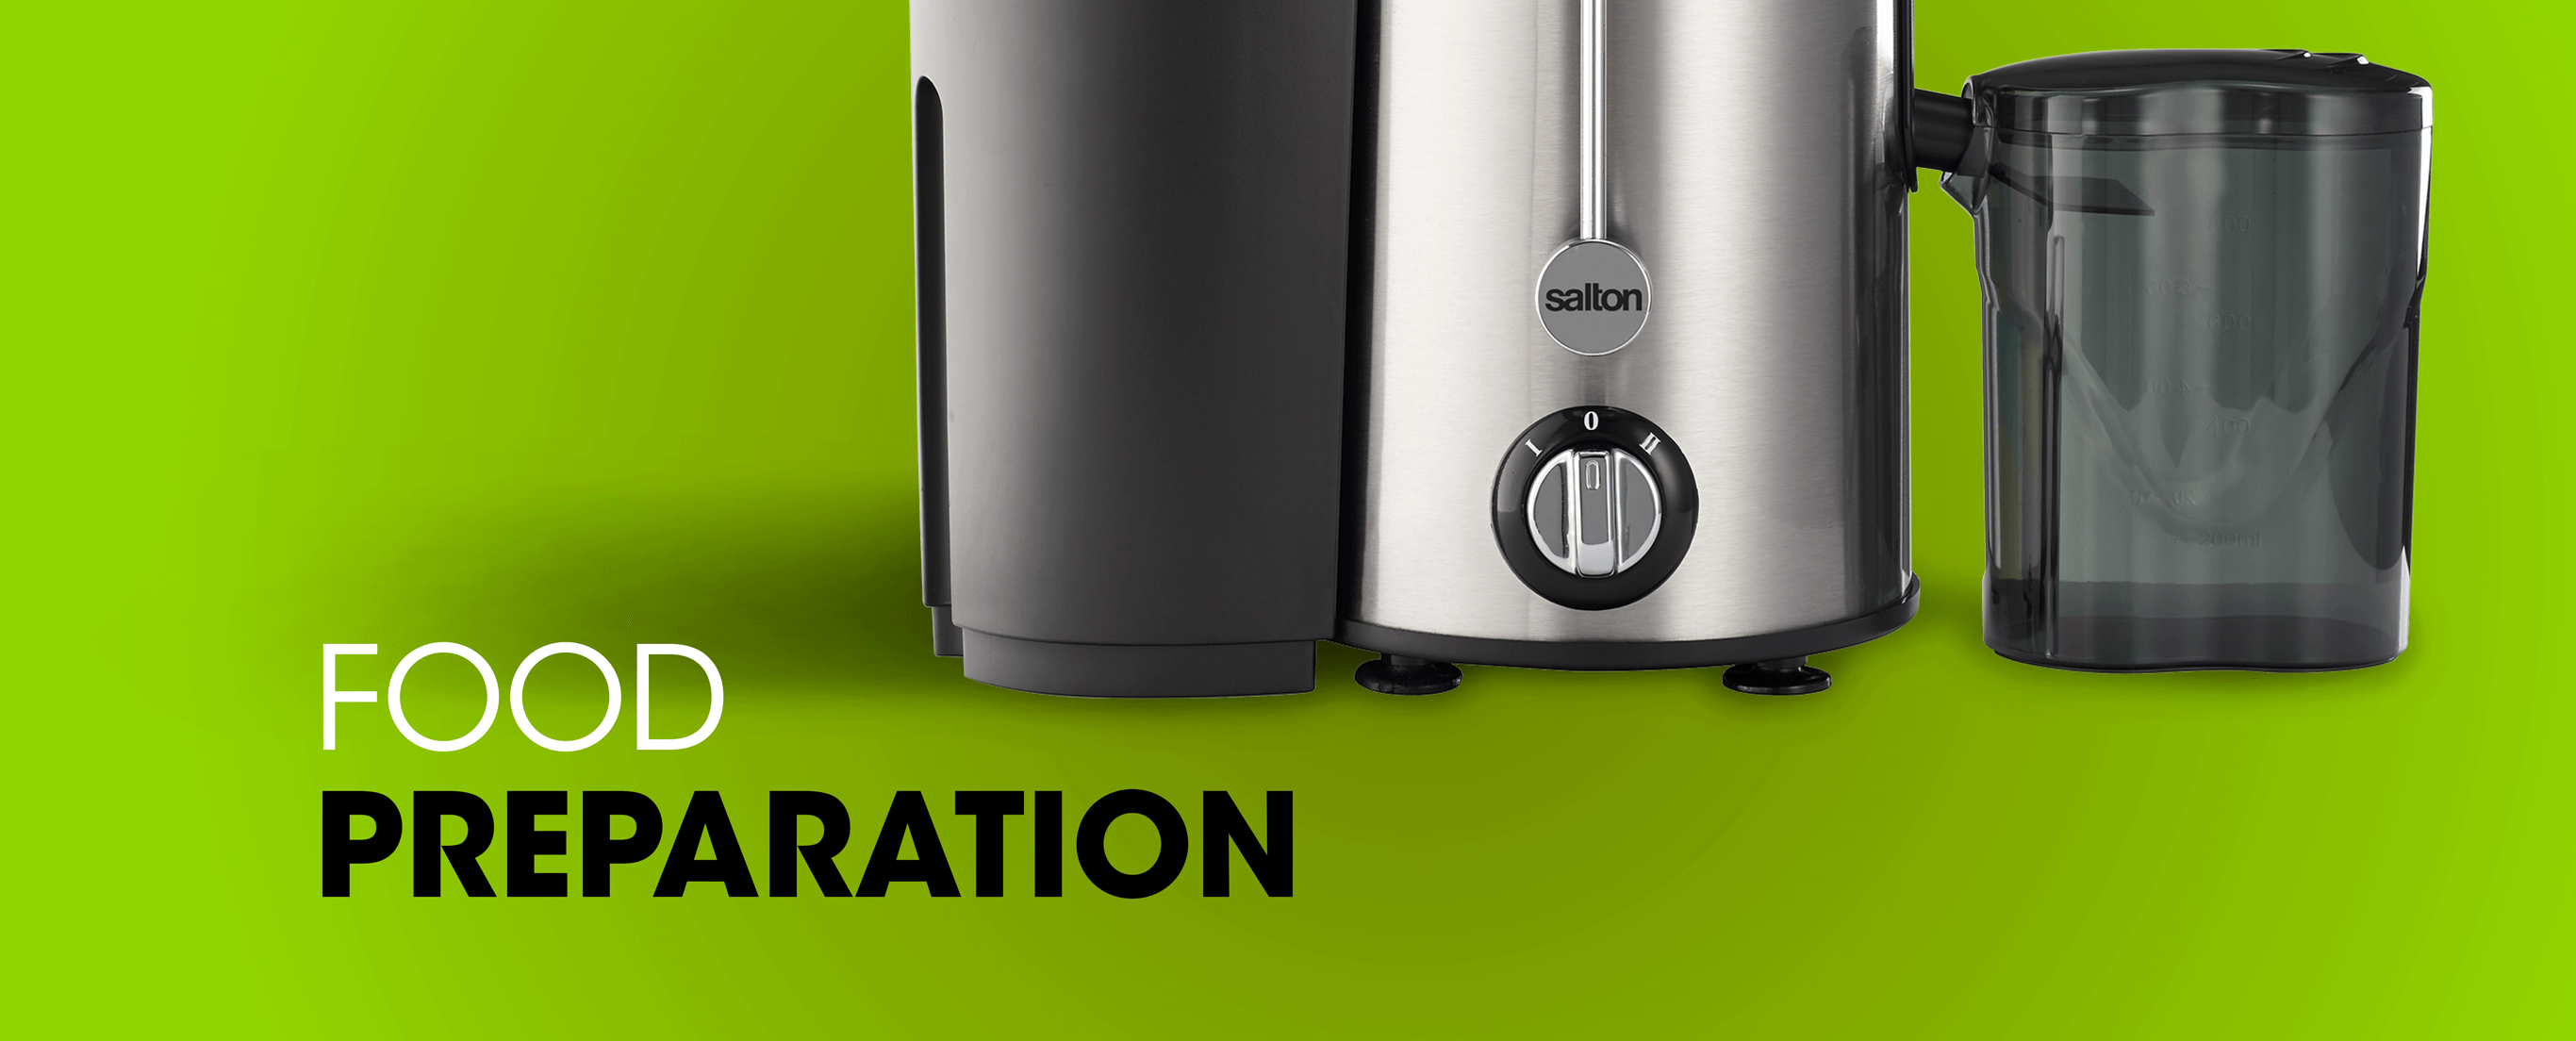 Food Preparation Appliances by Salton